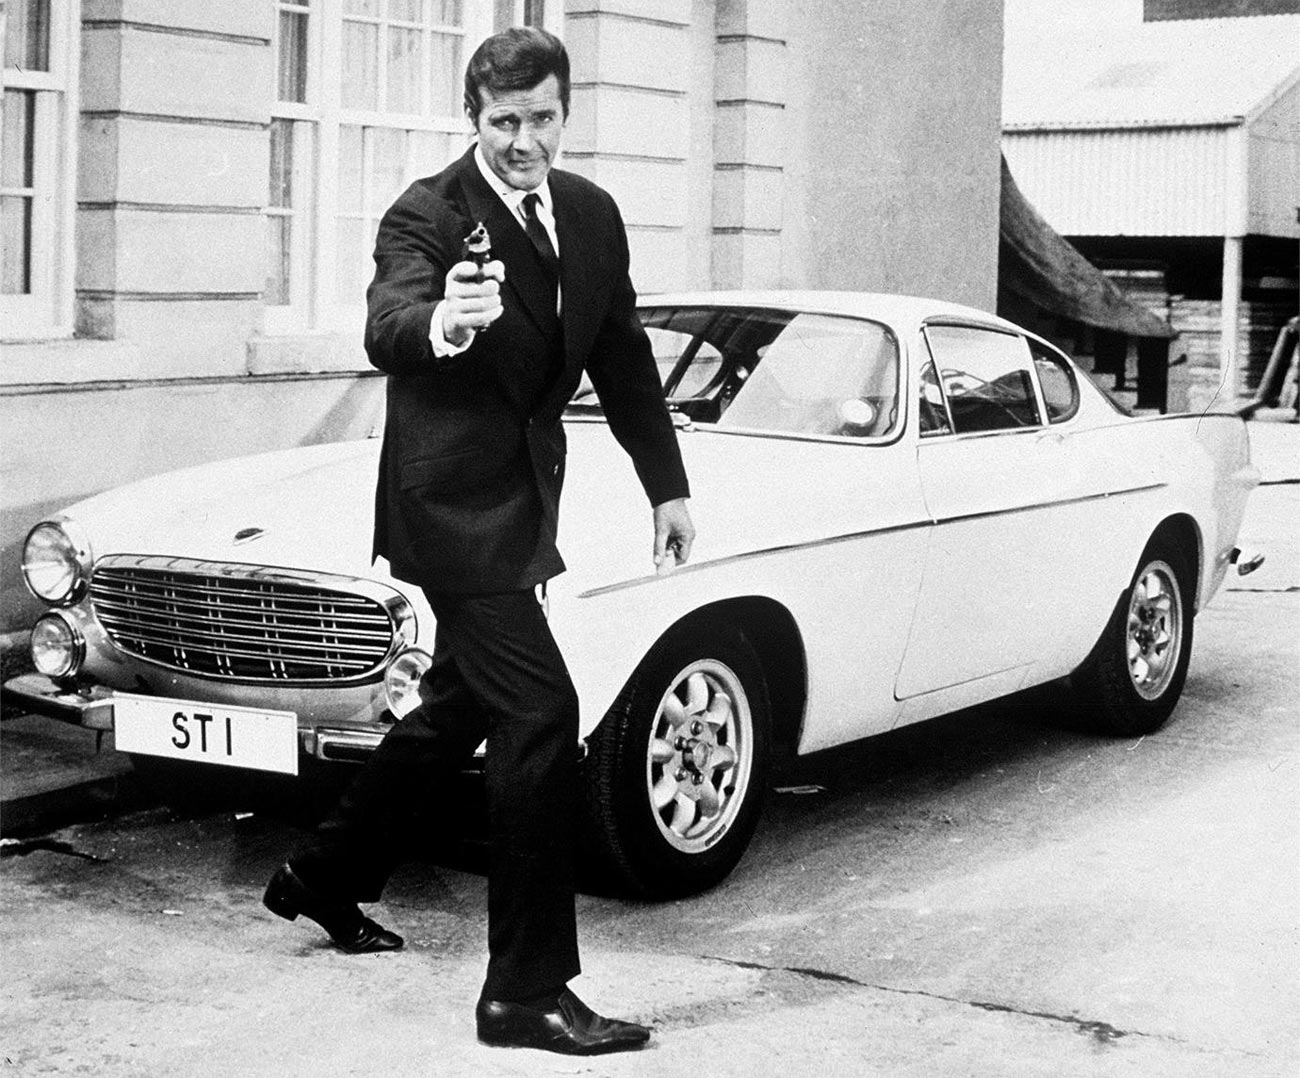 Roger Moore as Simon Templar in 'The Saint' with the Volvo P1800 ST 1